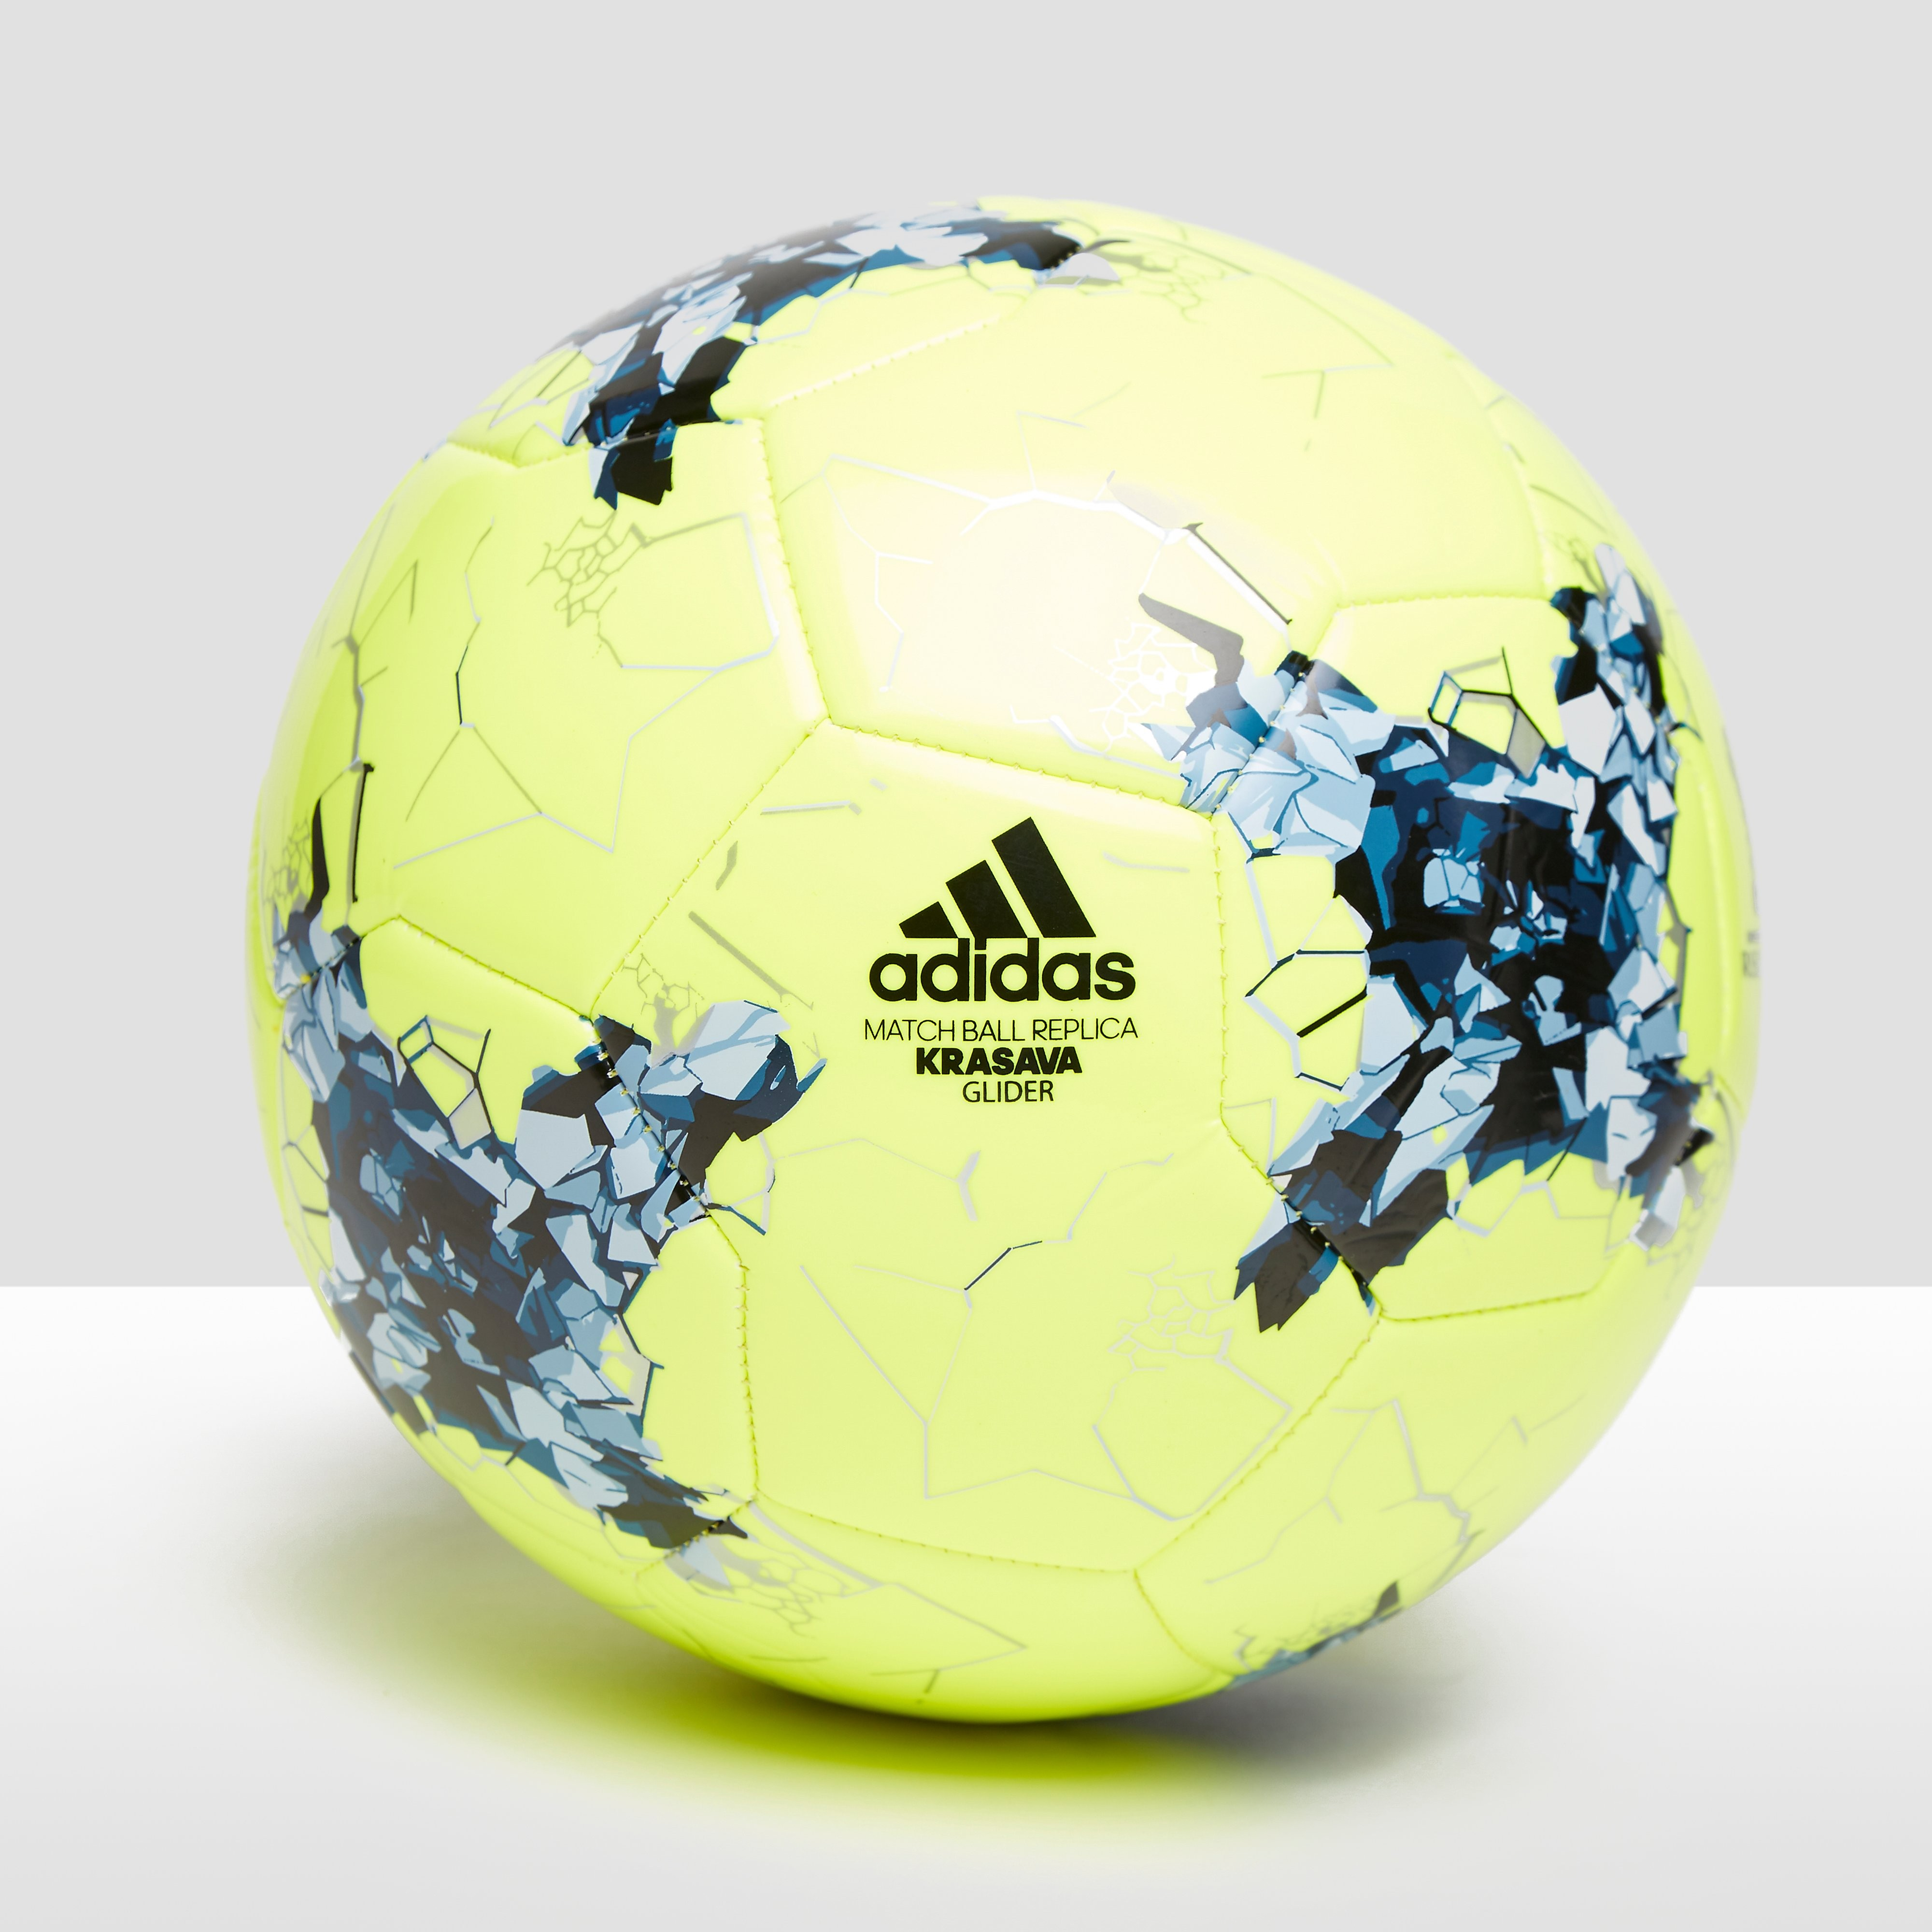 ADIDAS CONFEDERATIONS CUP GLIDER VOETBAL GEEL/BLAUW